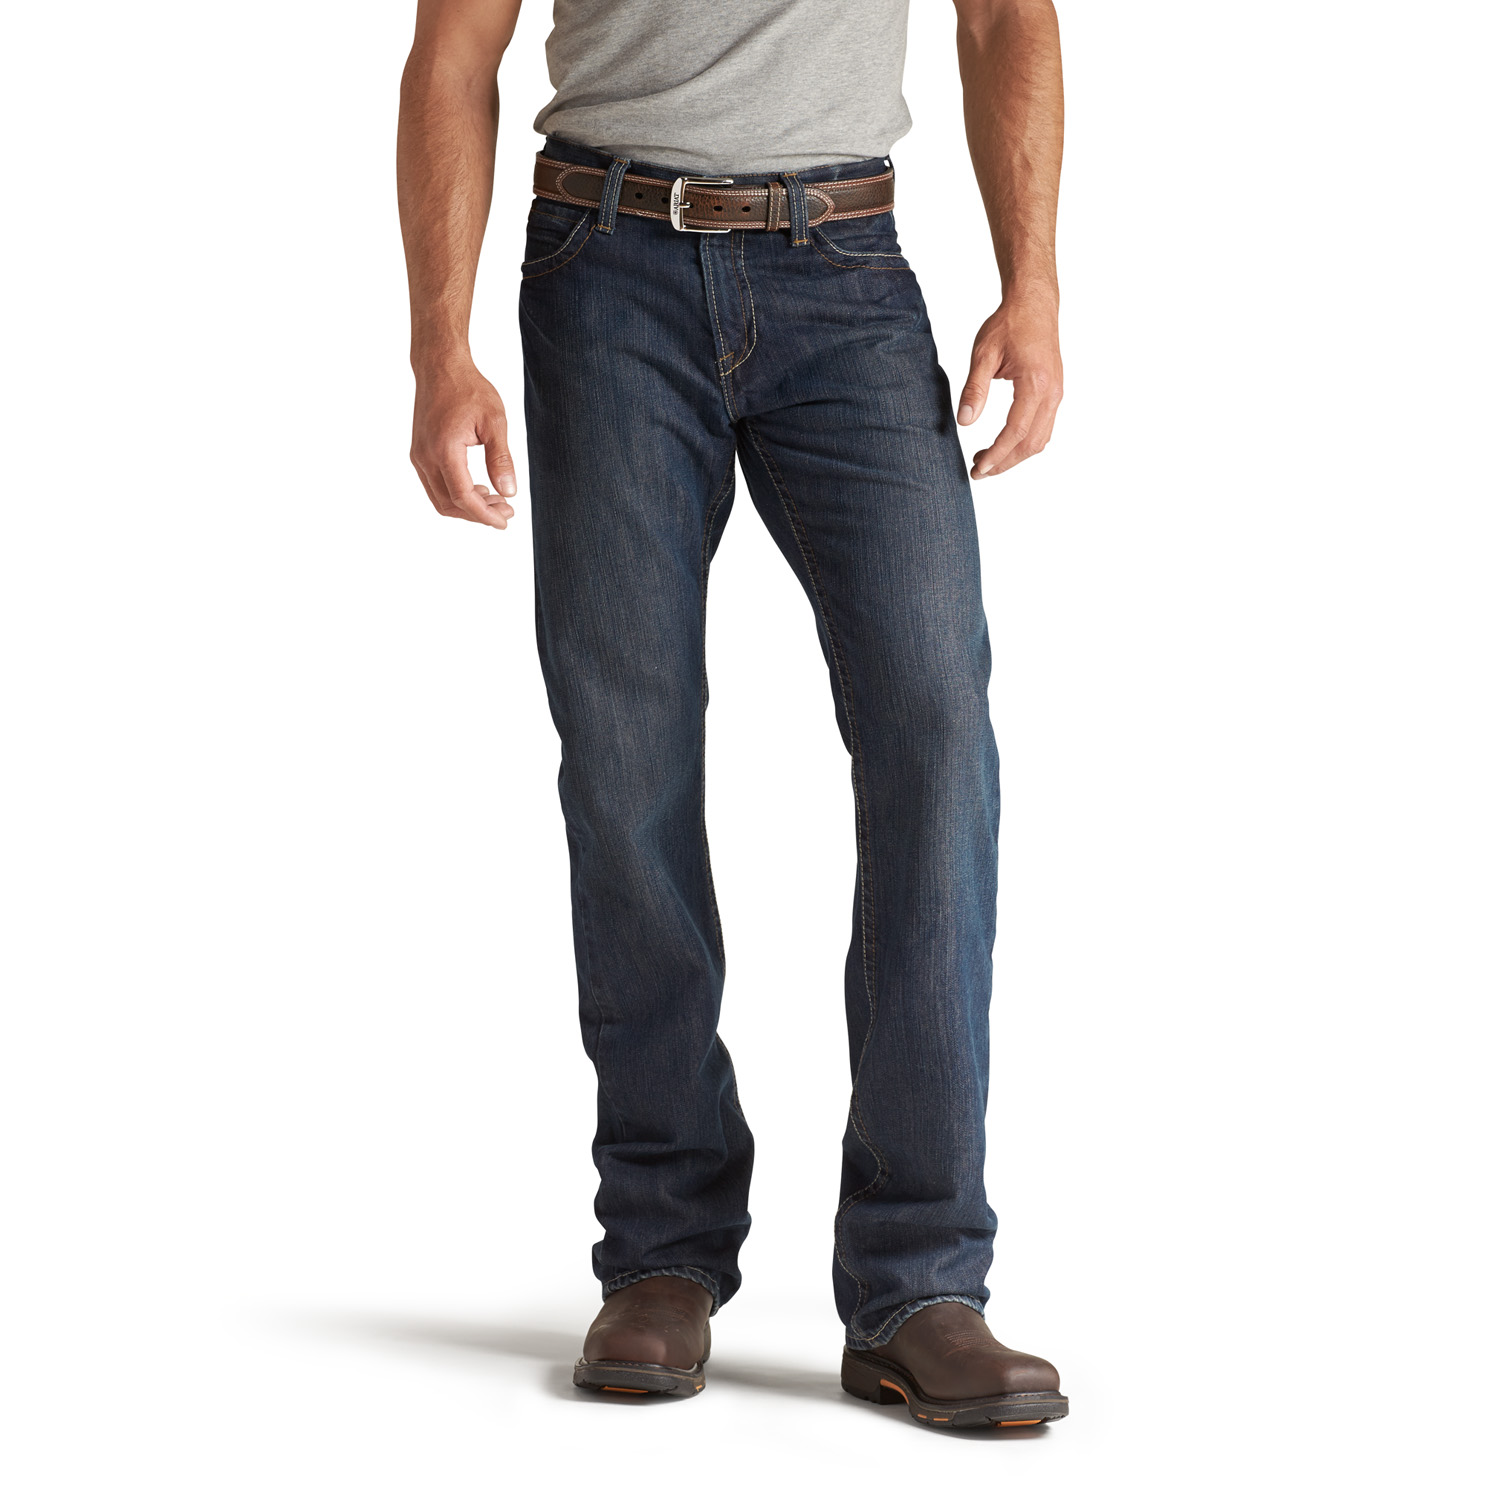 Ariat M4 Fr Boot Cut Work Jeans Flame Resistant Denim